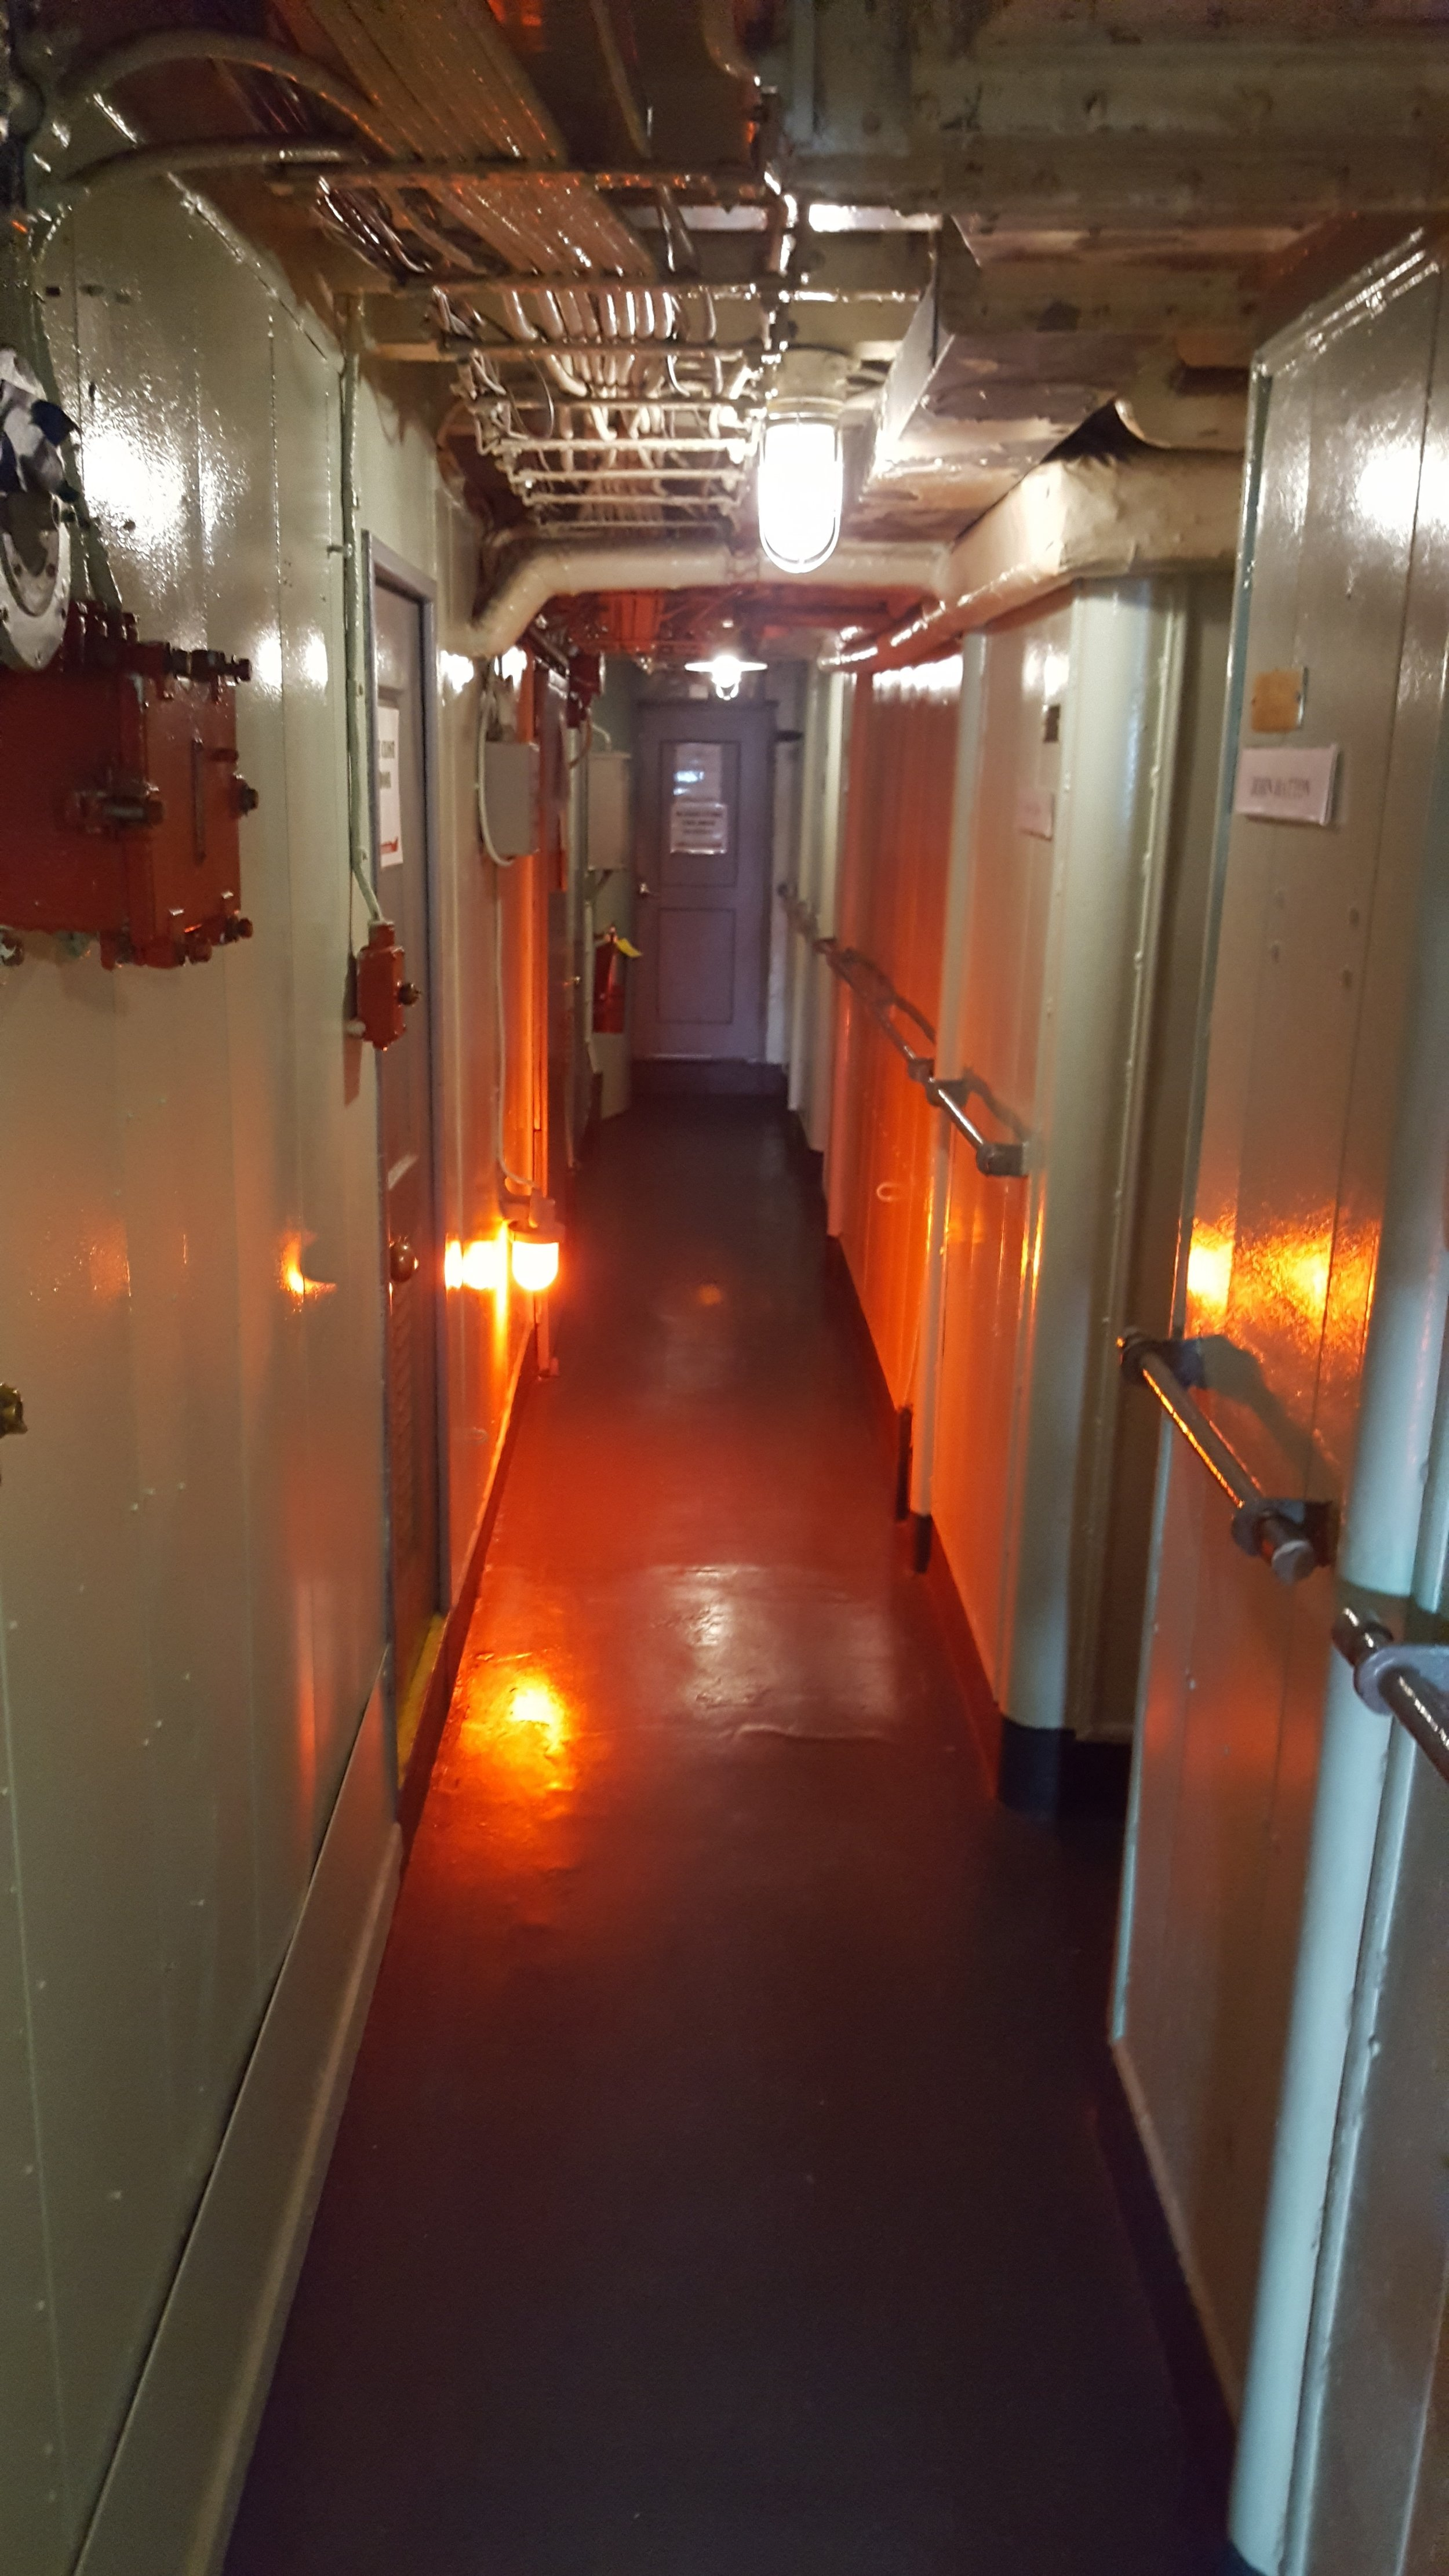 One of the hallways in the officer cabin area. These cabins are located in the superstructure of the ship. Photo: Author.